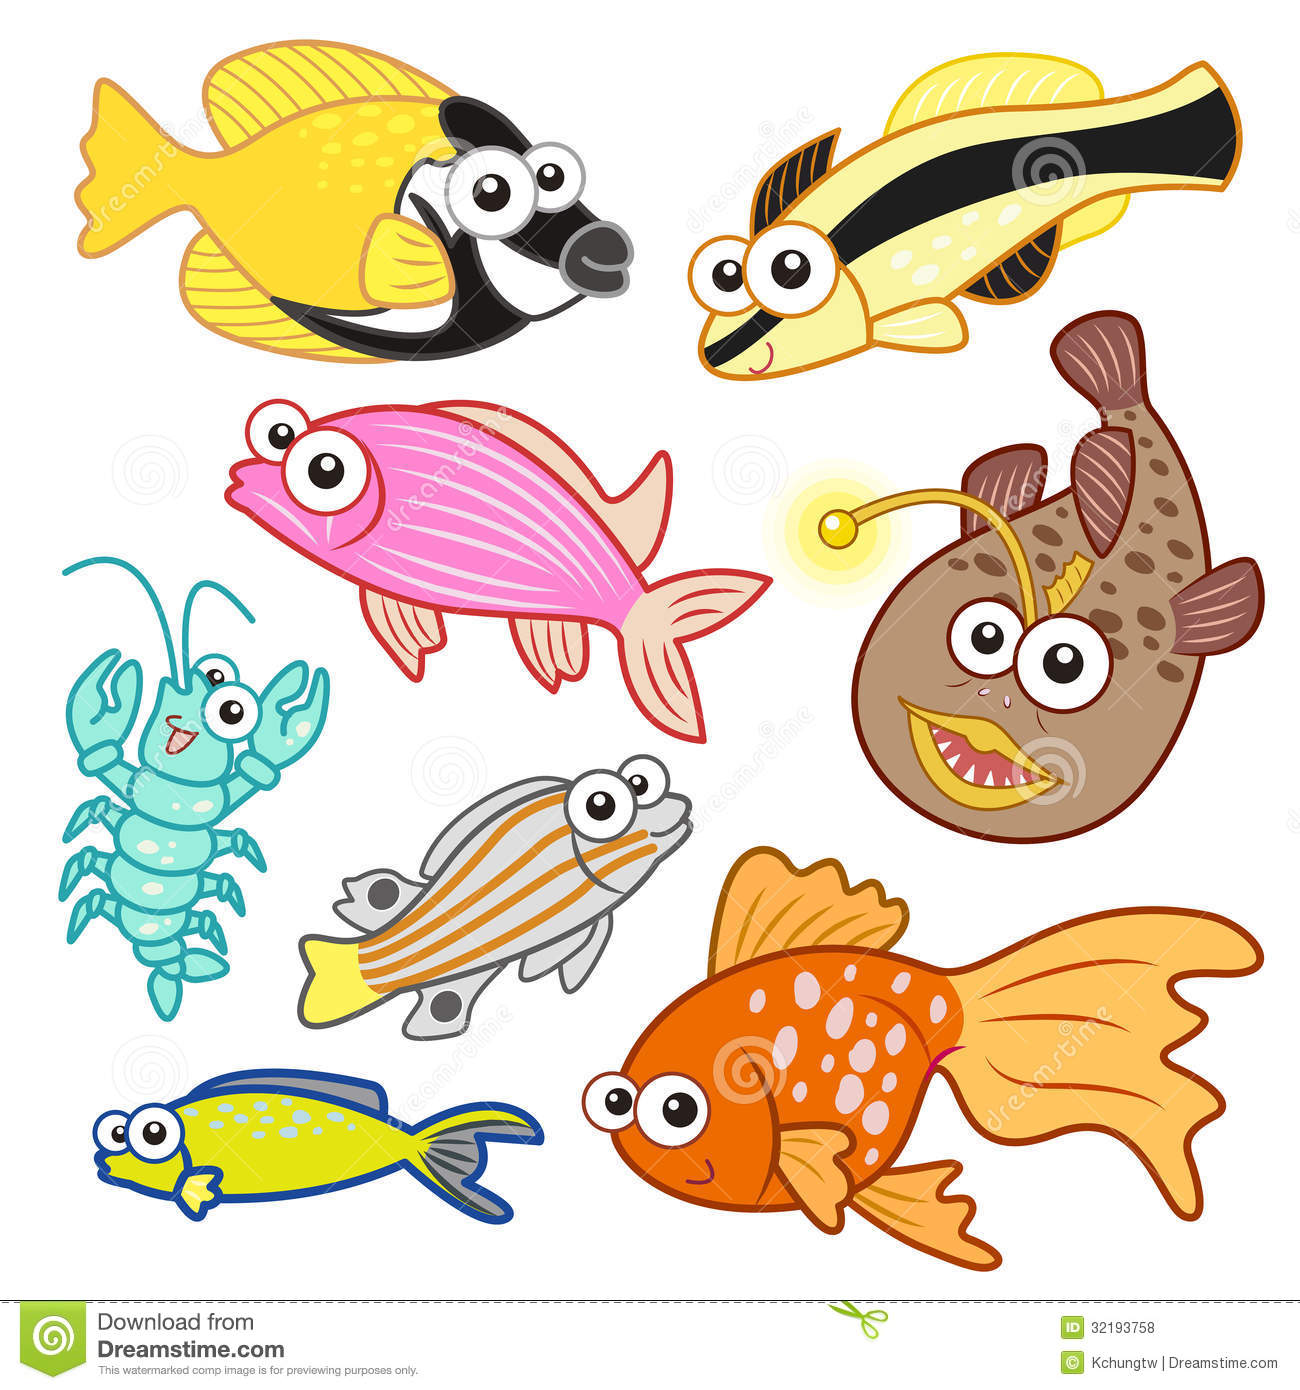 Cartoon: Cartoon Sea Animals Set With White Background Royalty Free